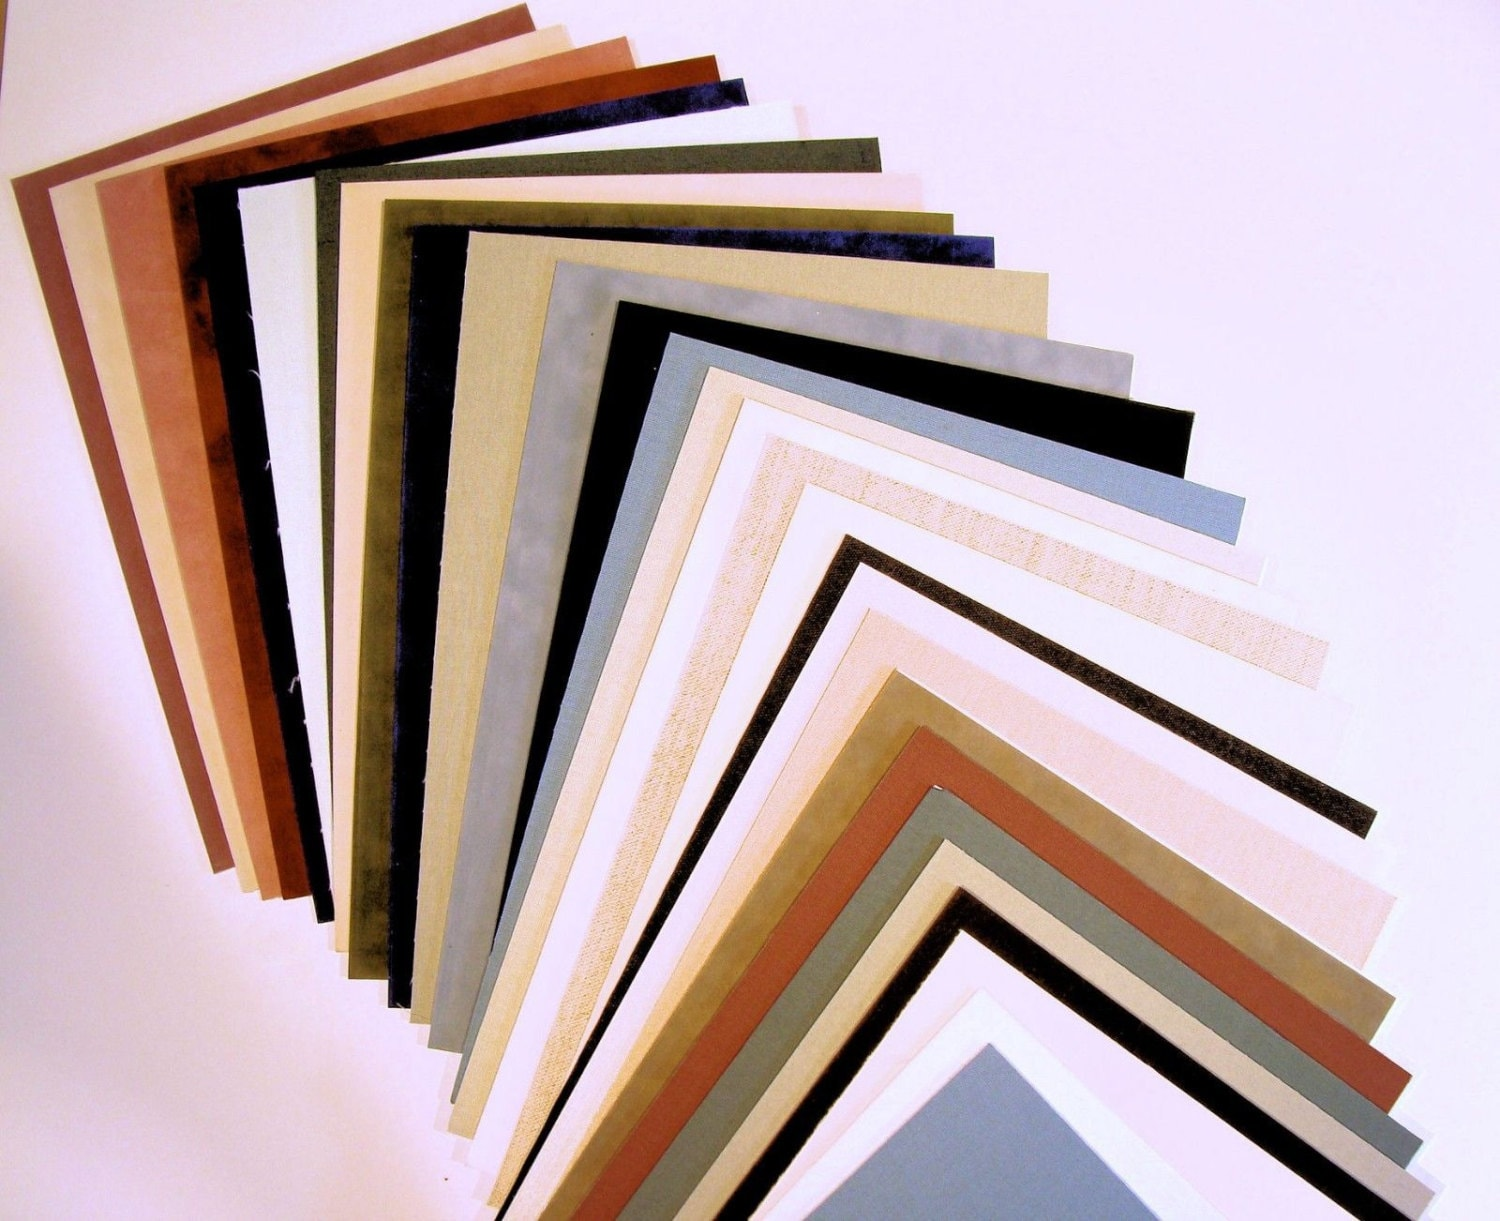 Fabric mat board matting blanks for picture framing art phtos or 1299 jeuxipadfo Choice Image